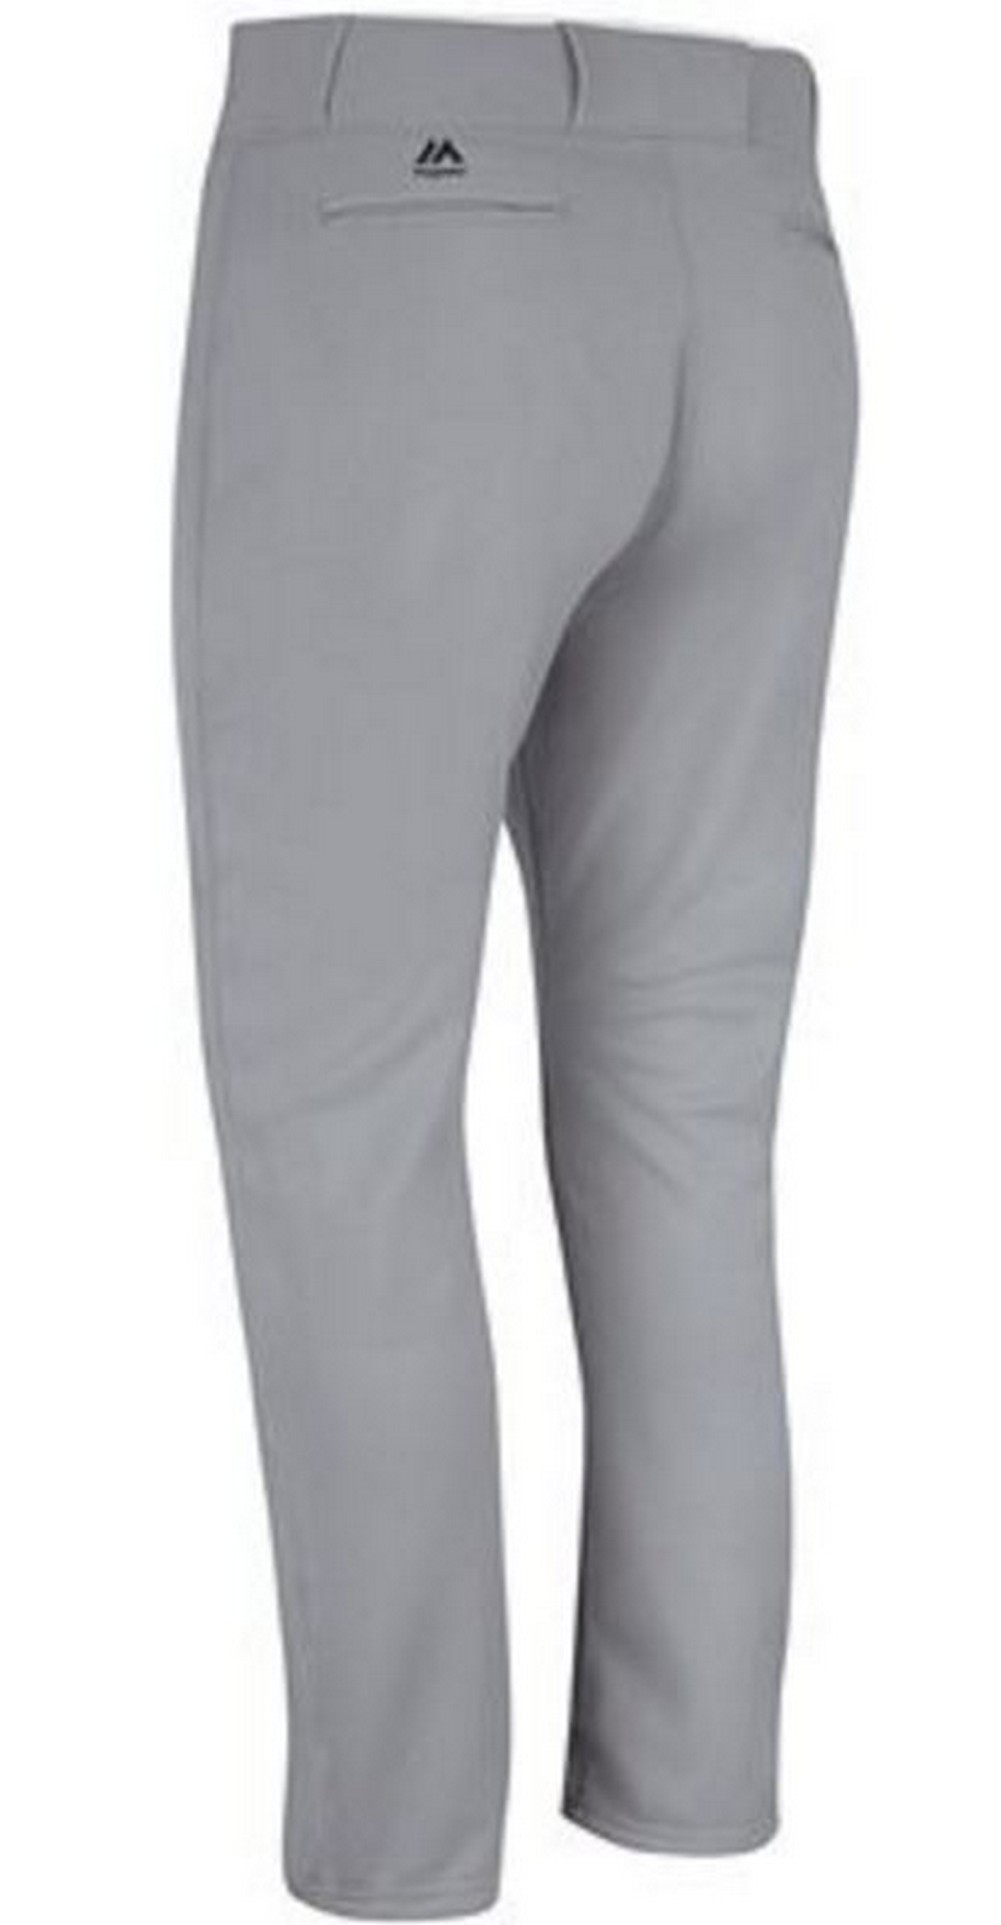 5afb5173ee7ef Majestic Men s MLB Cool Base HD Custom Inseam Baseball Pant Gray or ...